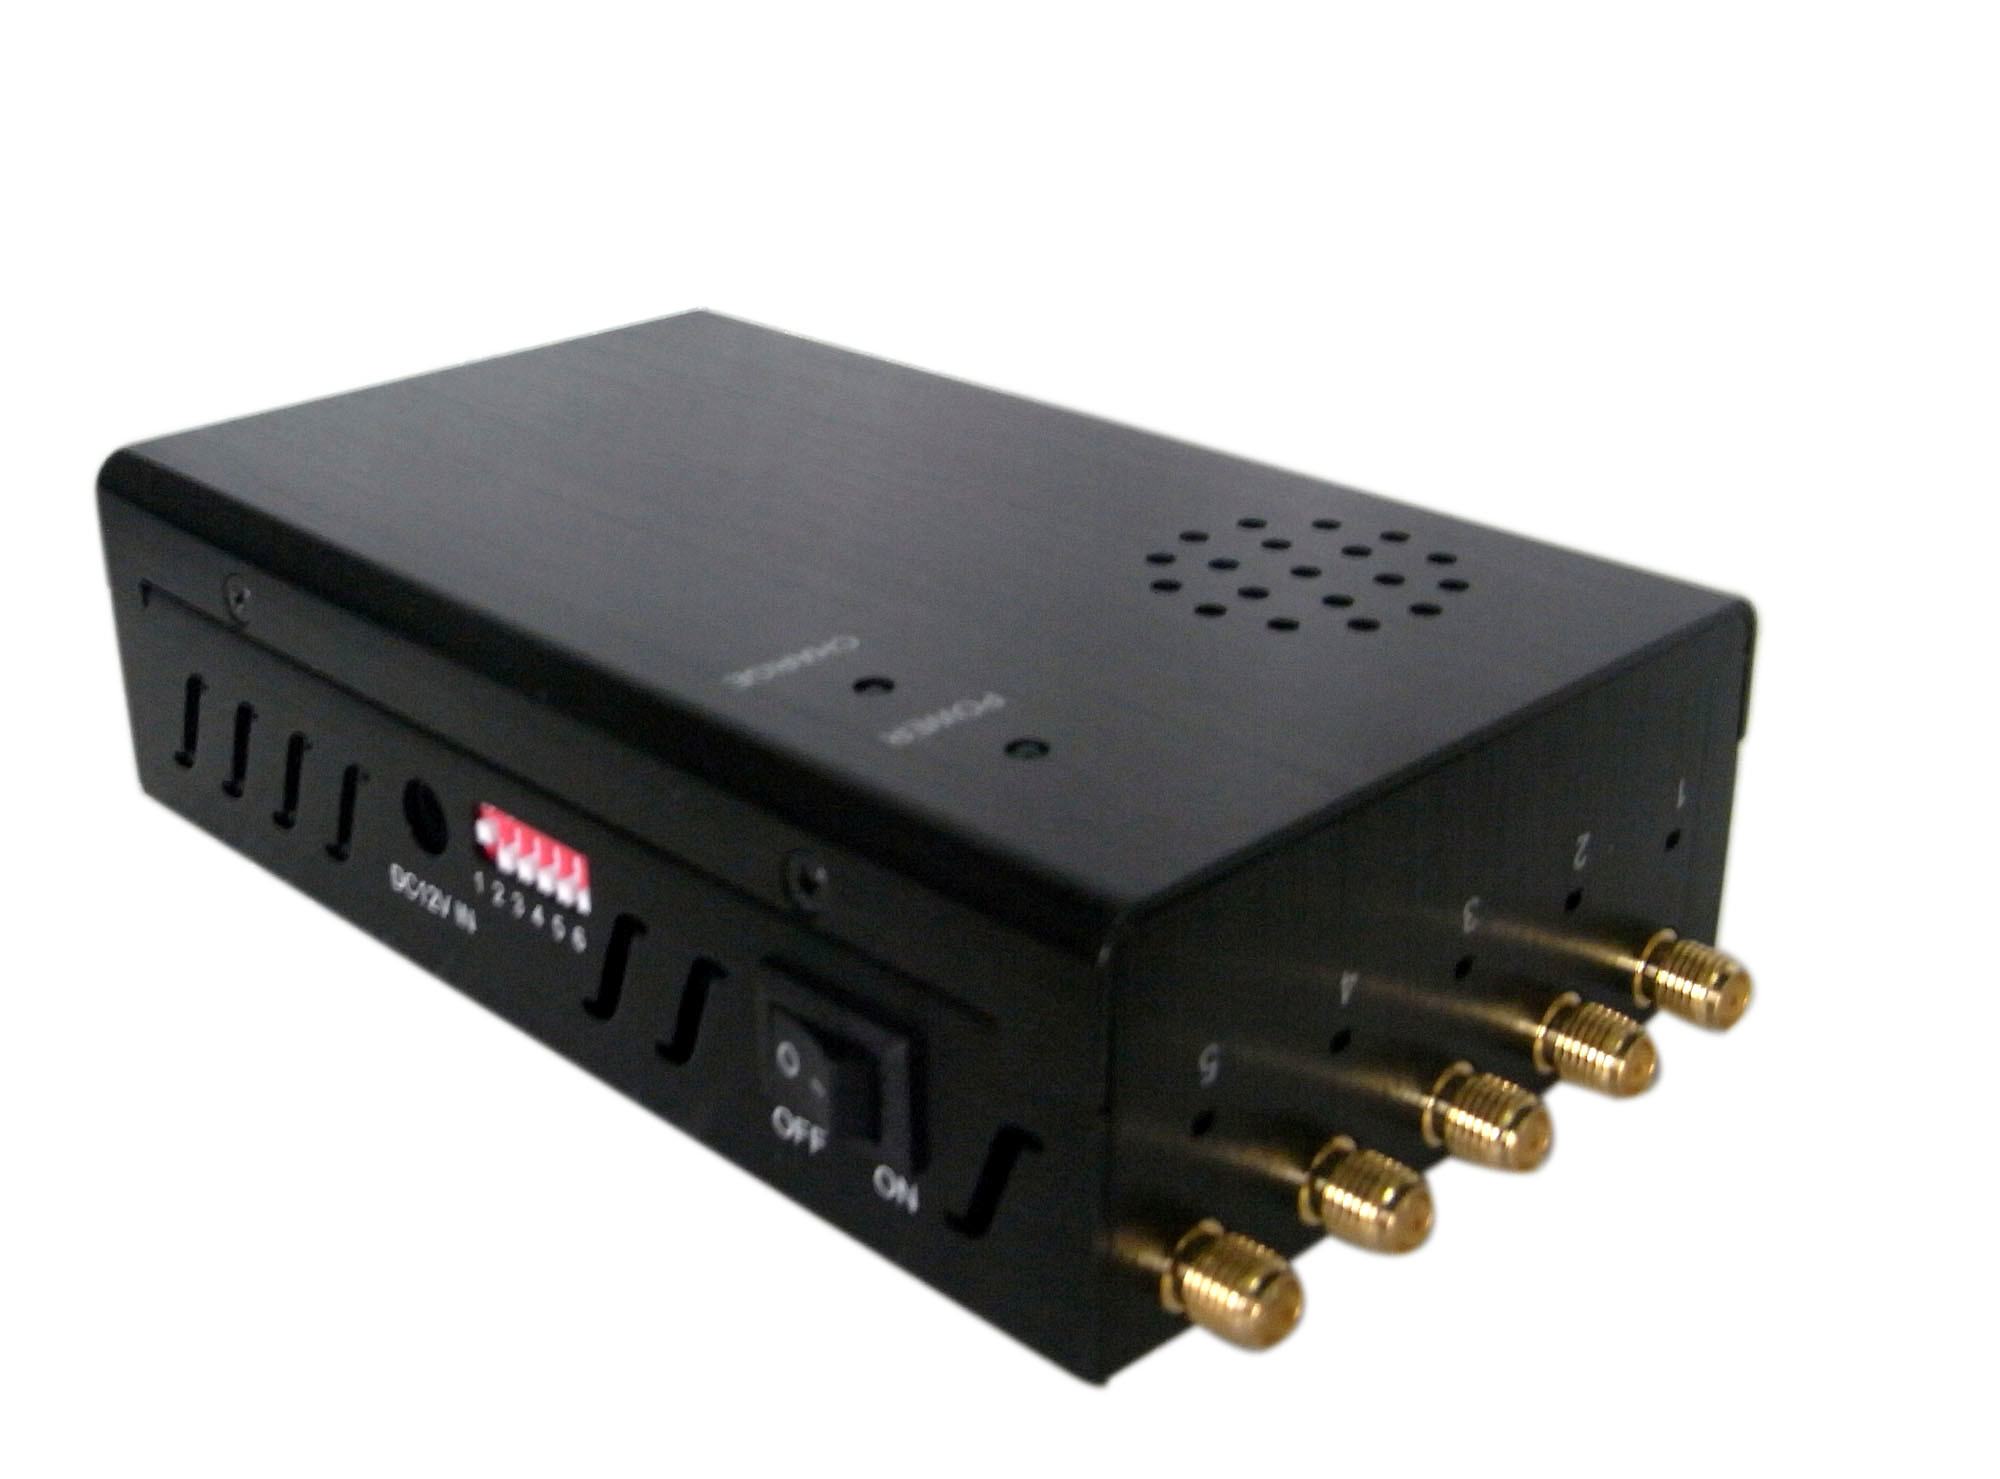 gps signal jammer uk threat